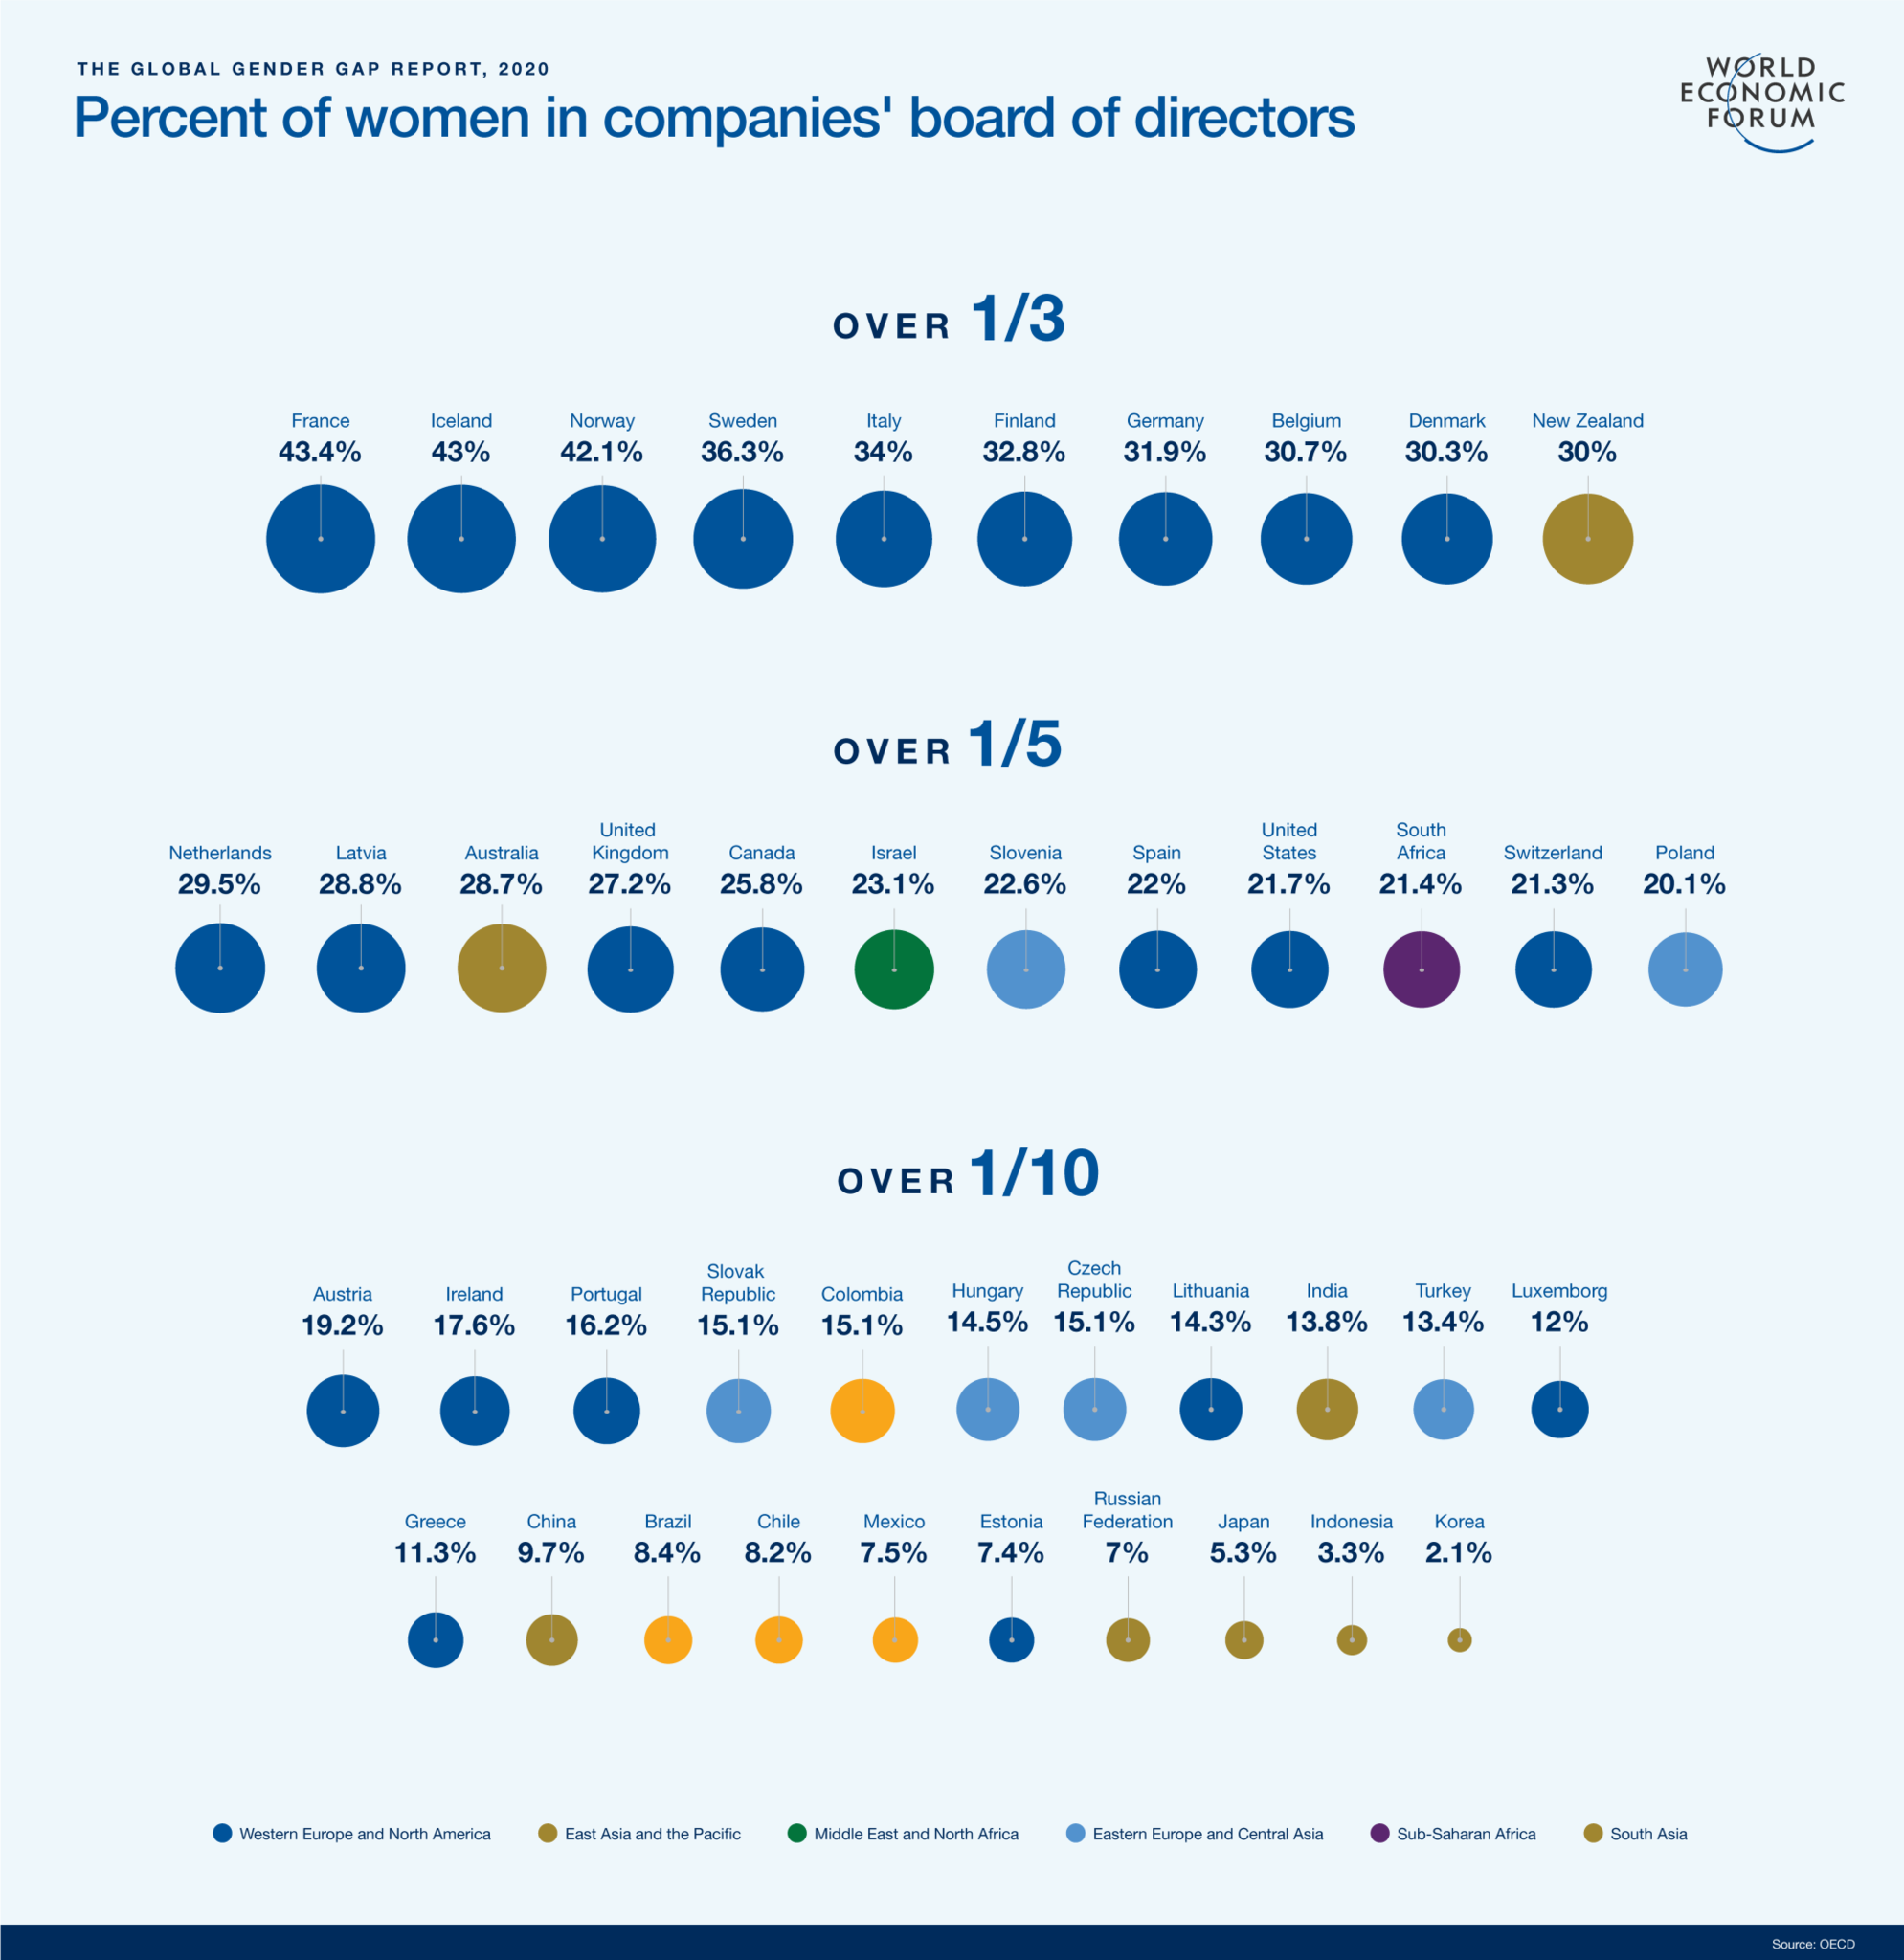 Percent of women in companies' board of directors